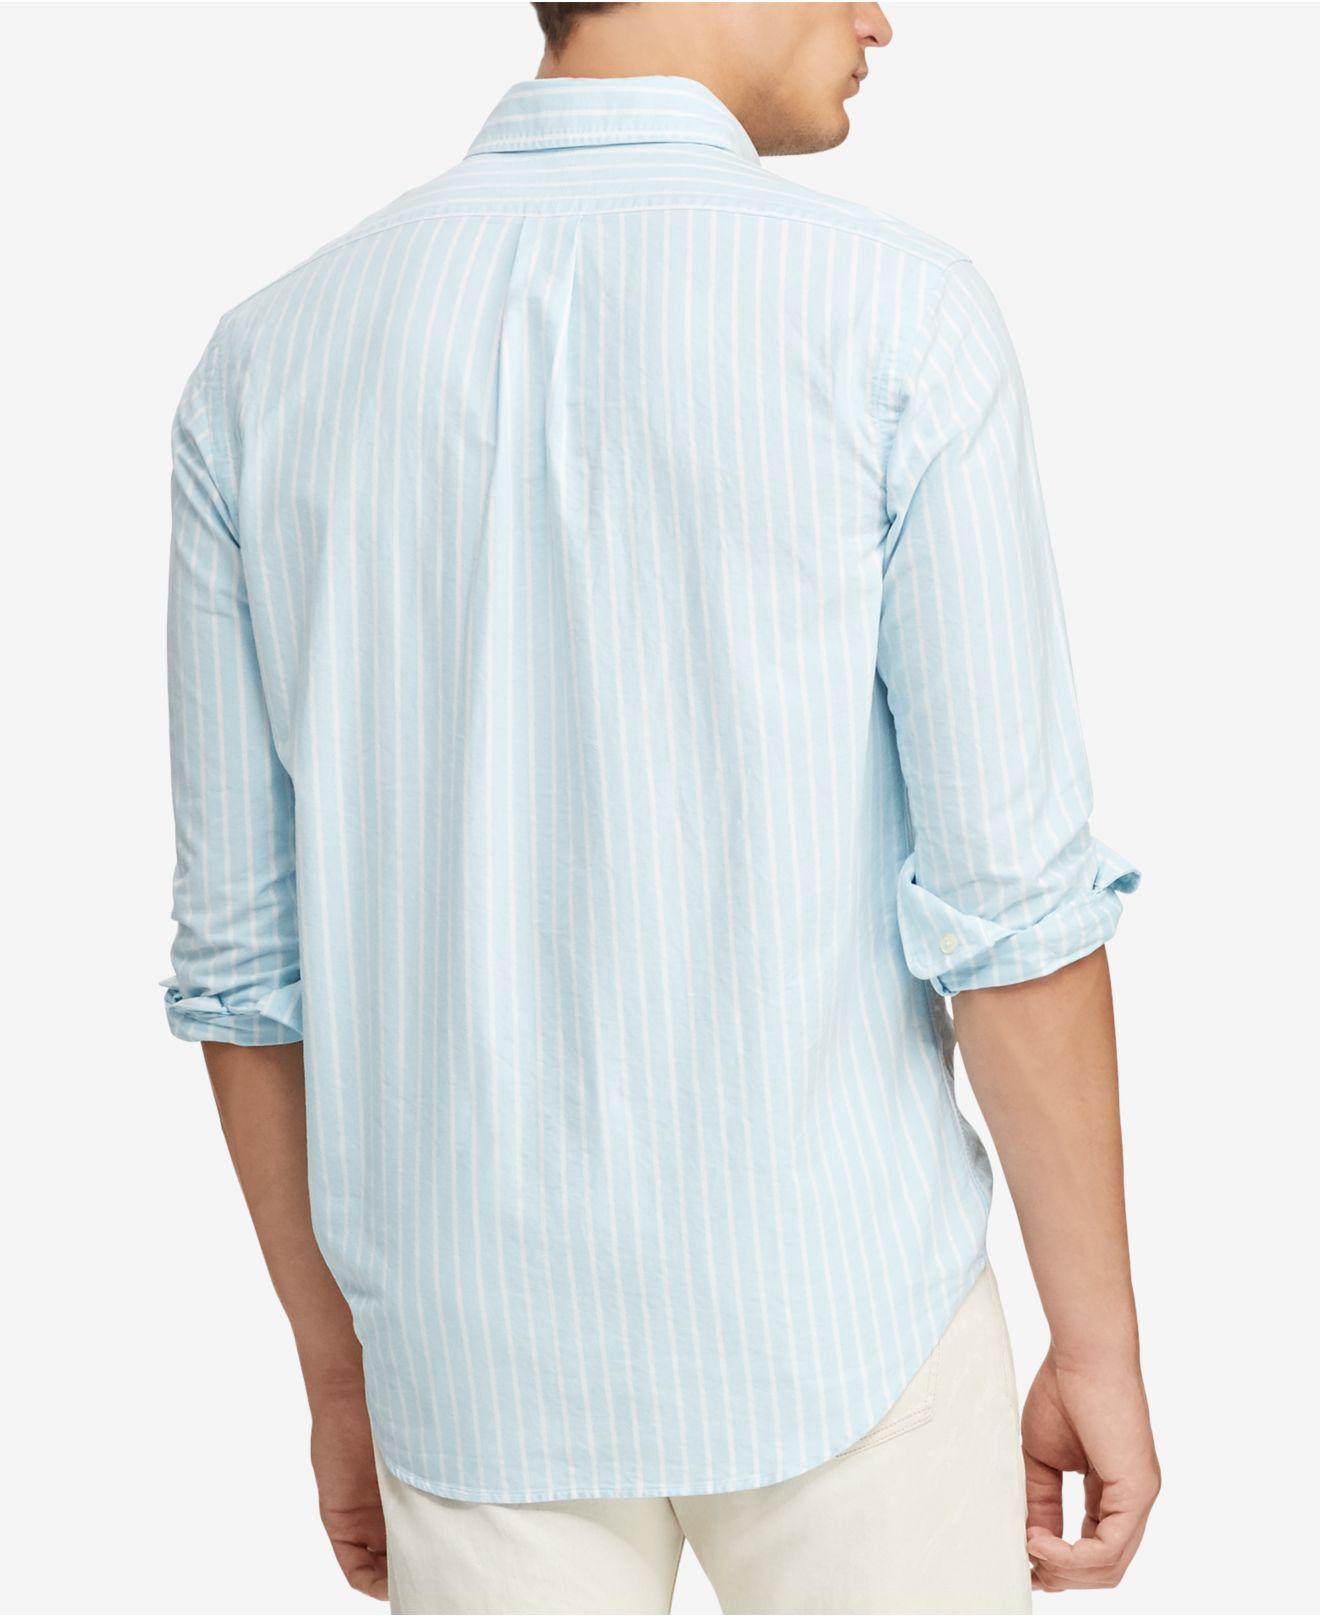 a07963e873d Lyst - Polo Ralph Lauren Classic Fit Striped Shirt in Blue for Men - Save  25%